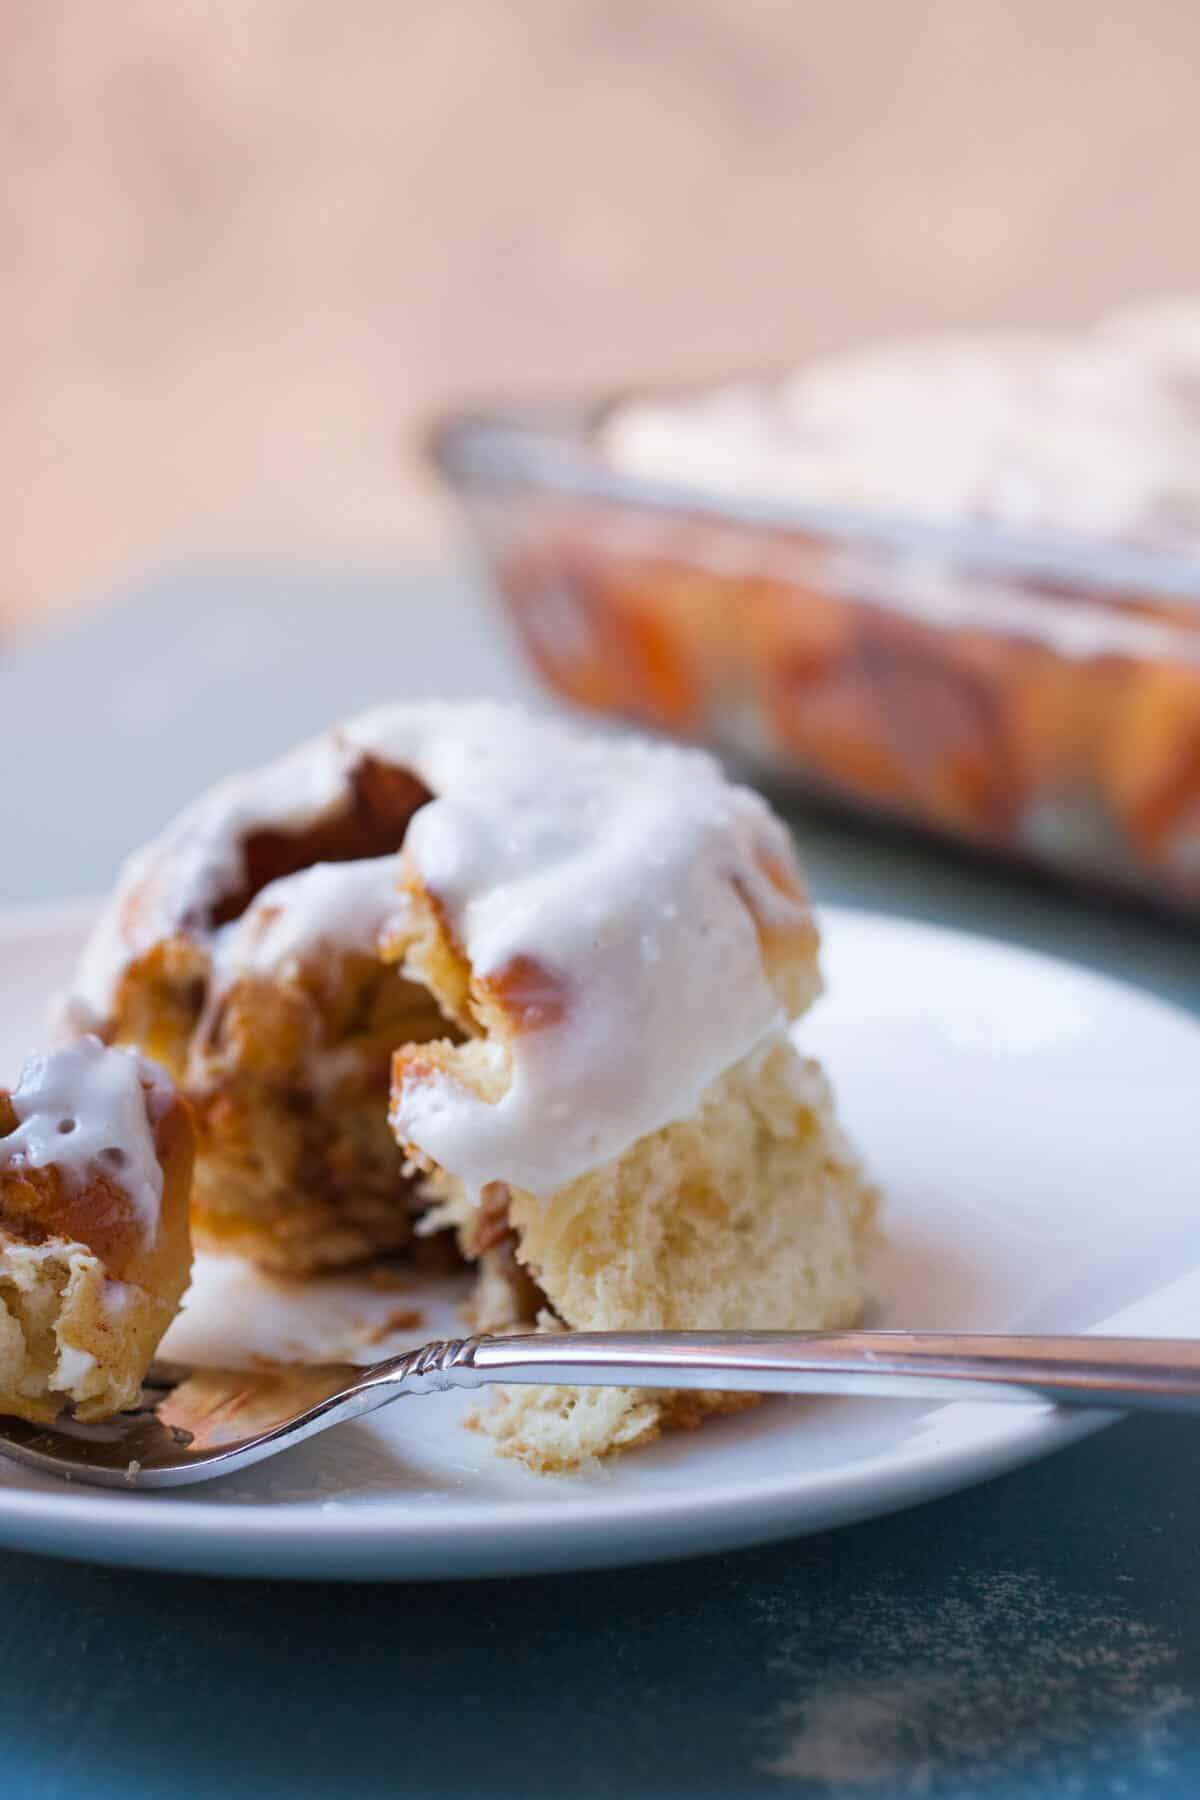 Overnight Cinnamon Rolls: These are one of my favorite slow food breakfasts. Sure, they take time to make, but the results are one of the best cinnamon rolls you'll eat. Enjoy. | macheesmo.com